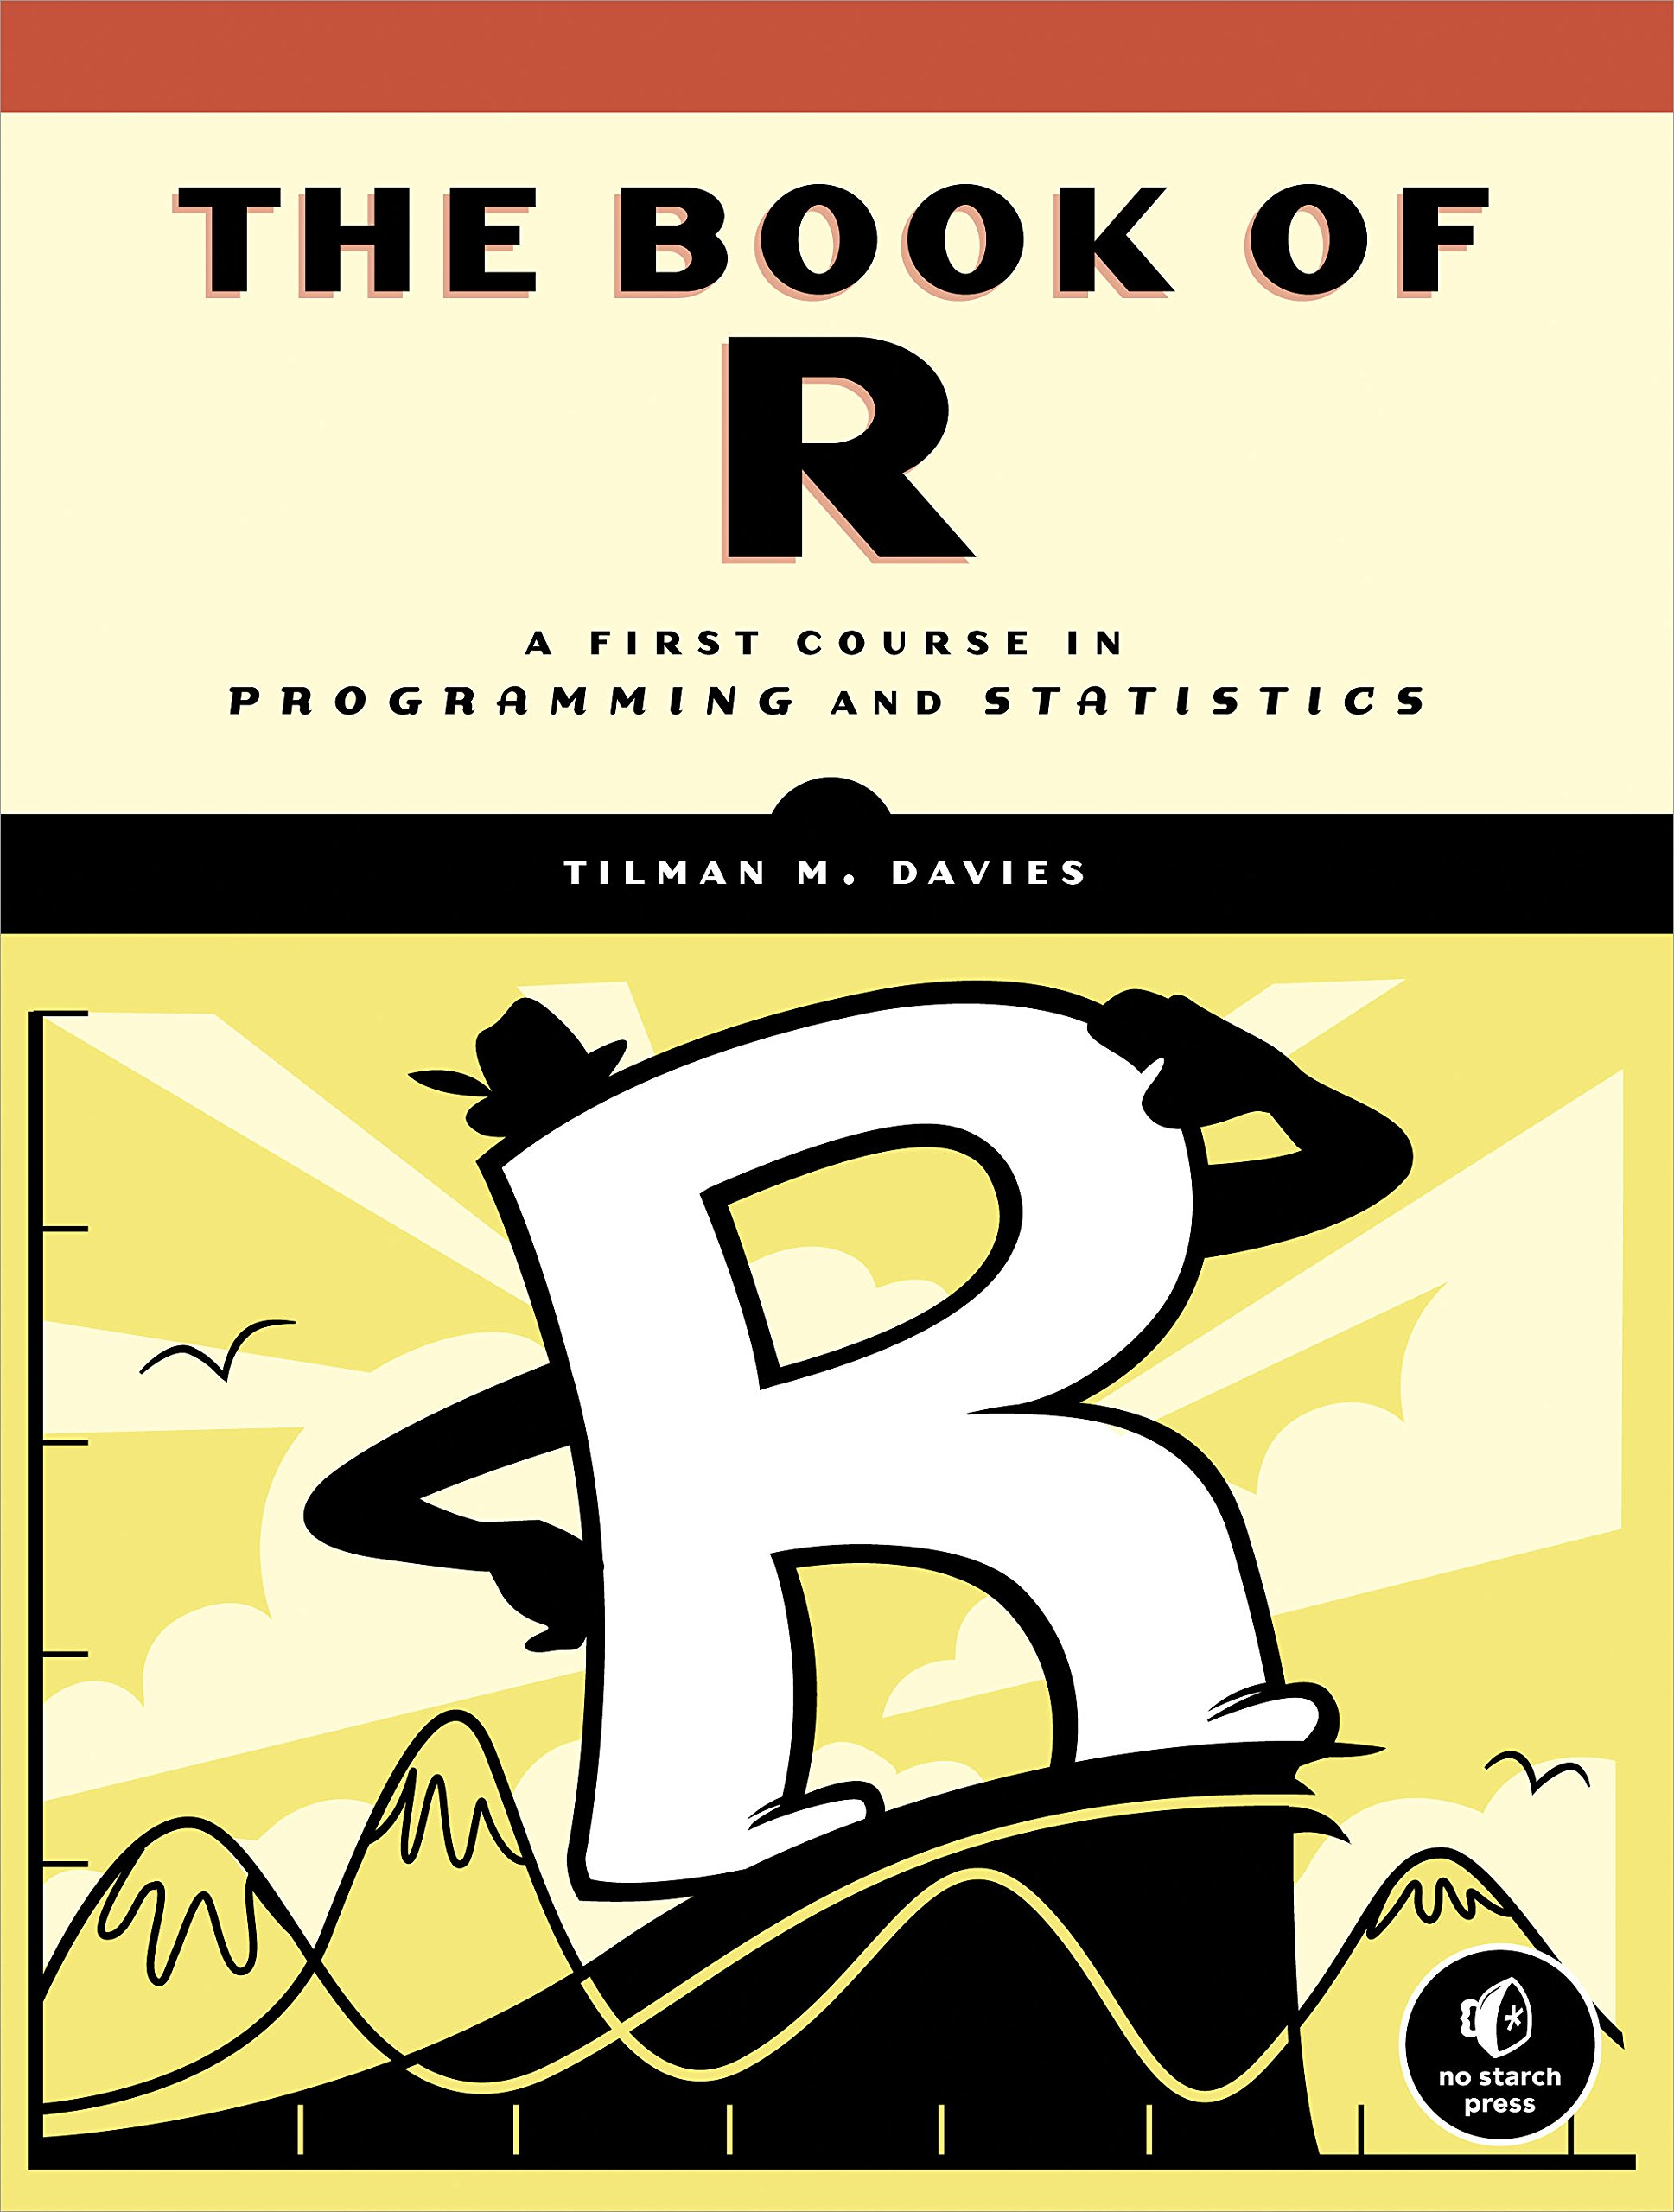 The Book of R ISBN-13 9781593276515